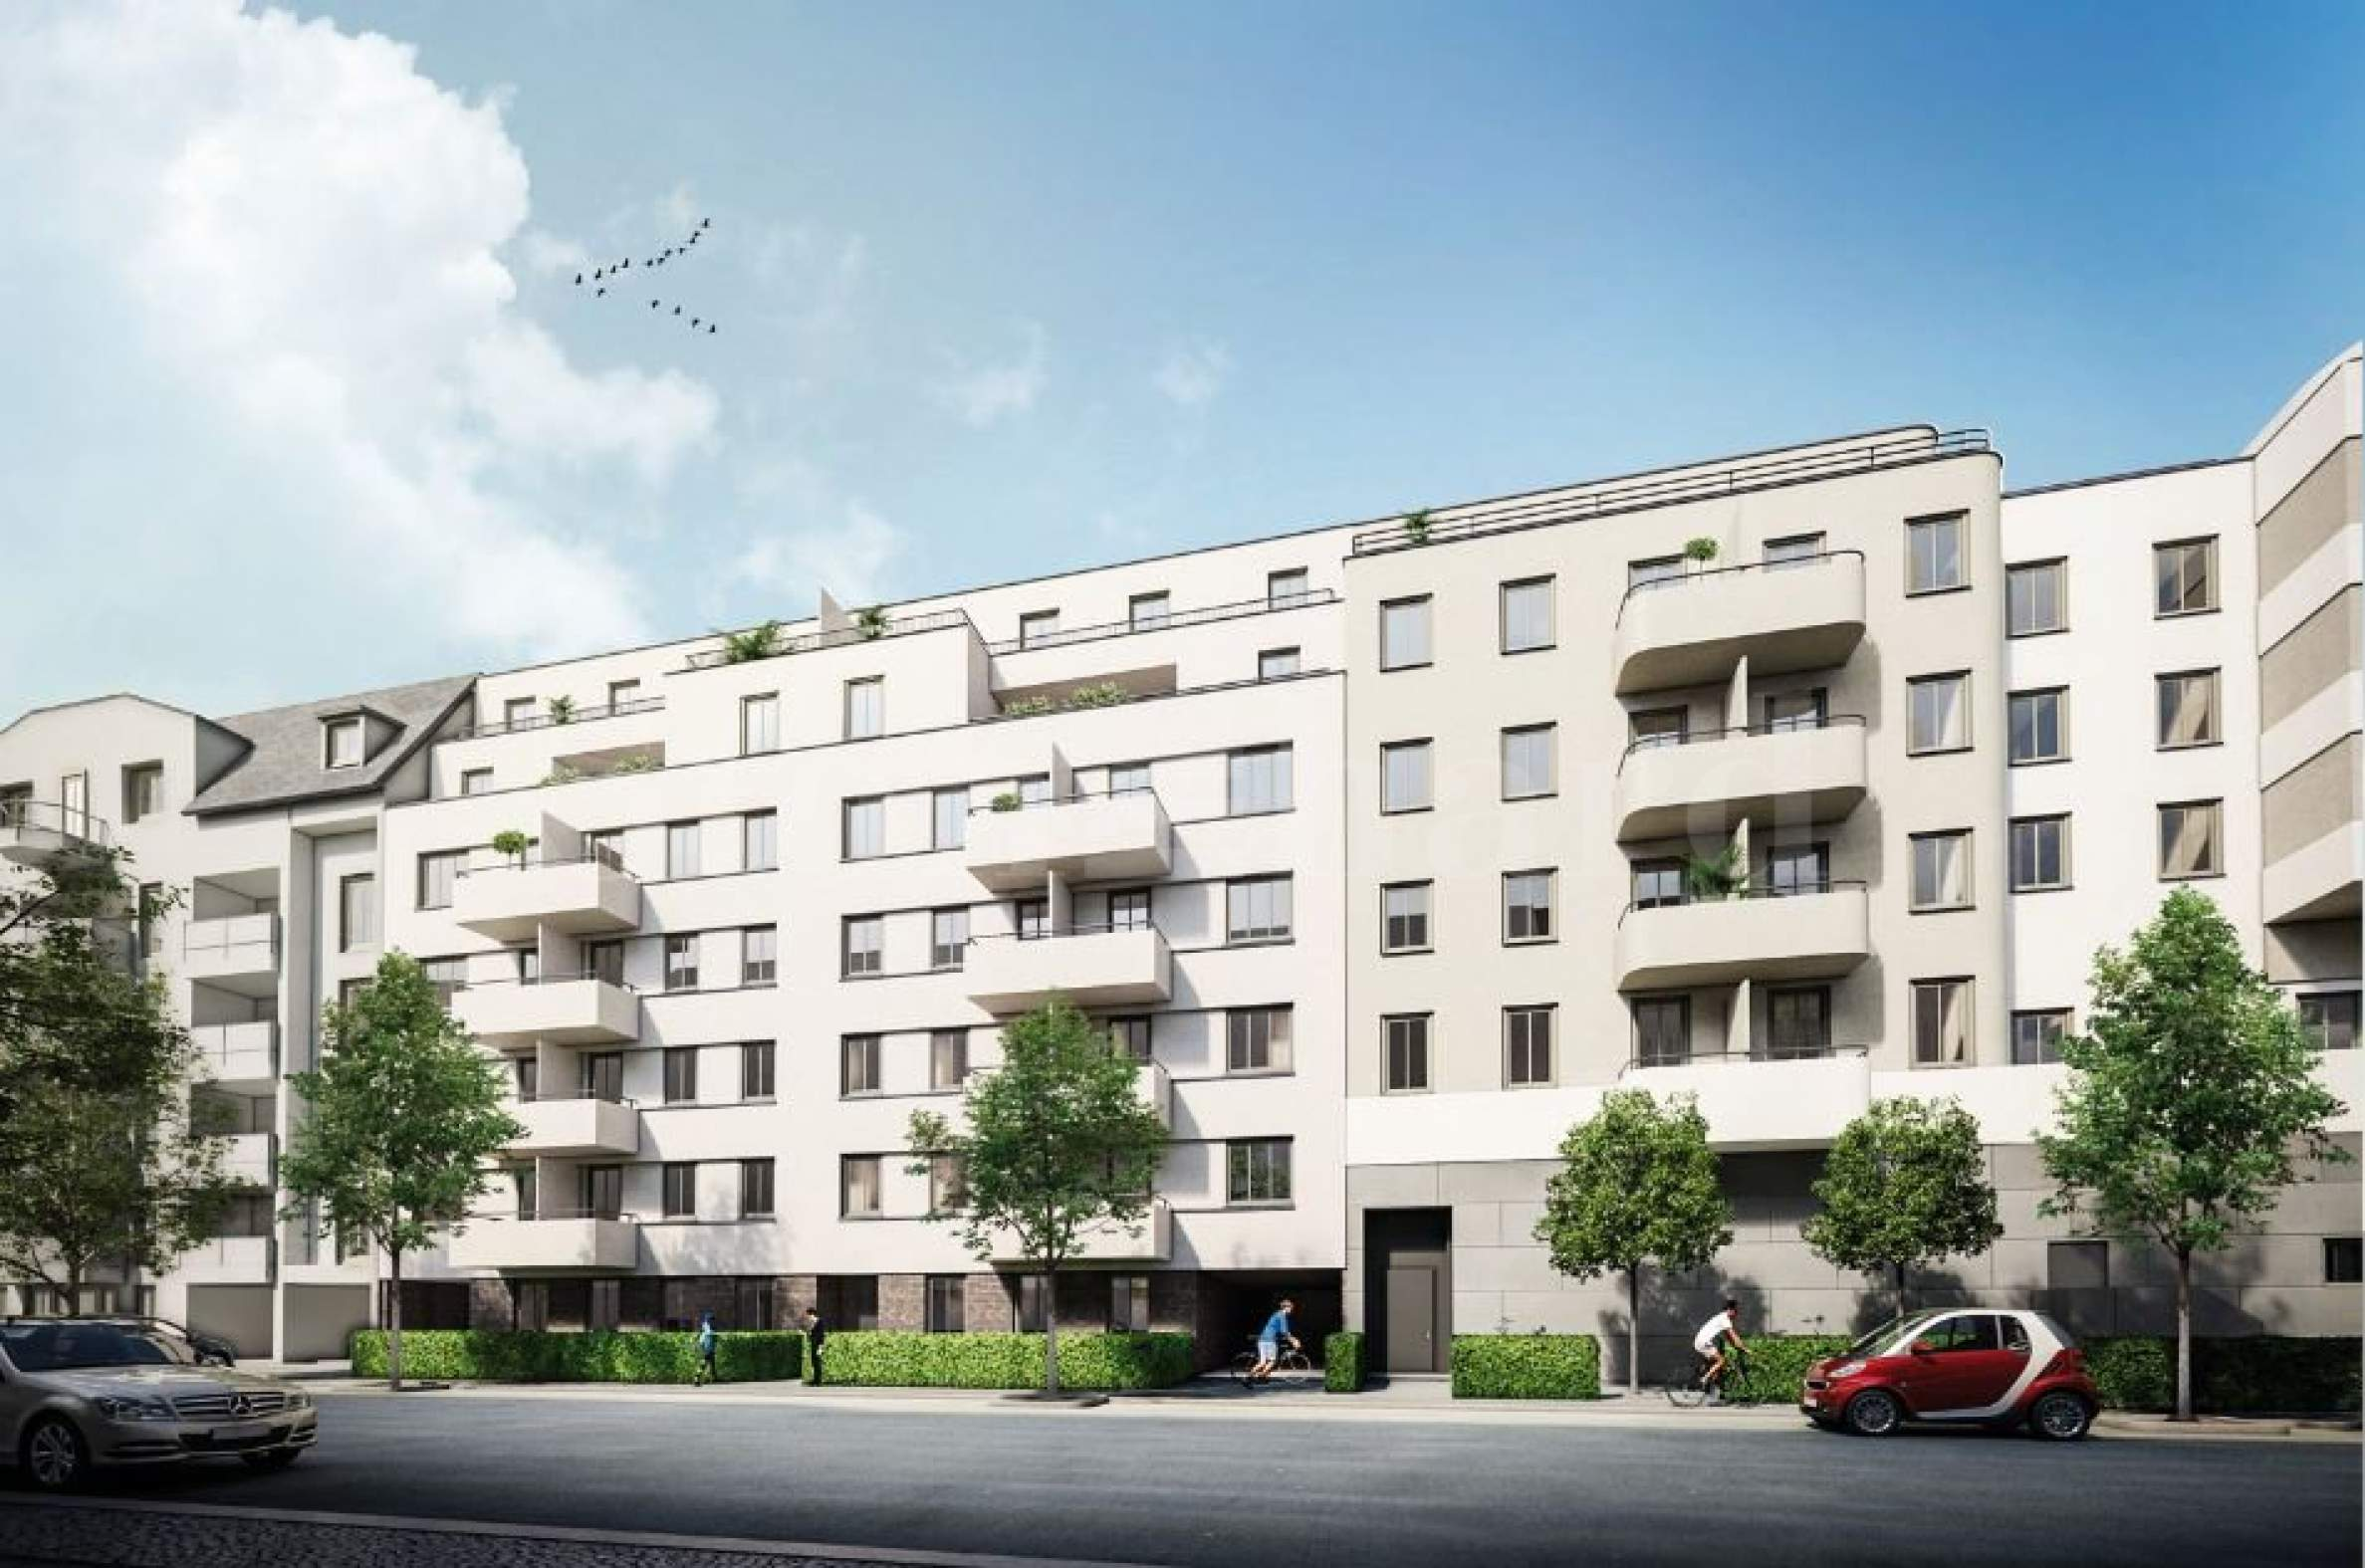 Exclusive apartments in 3 buildings in Berlin's Green Southwest1 - Stonehard